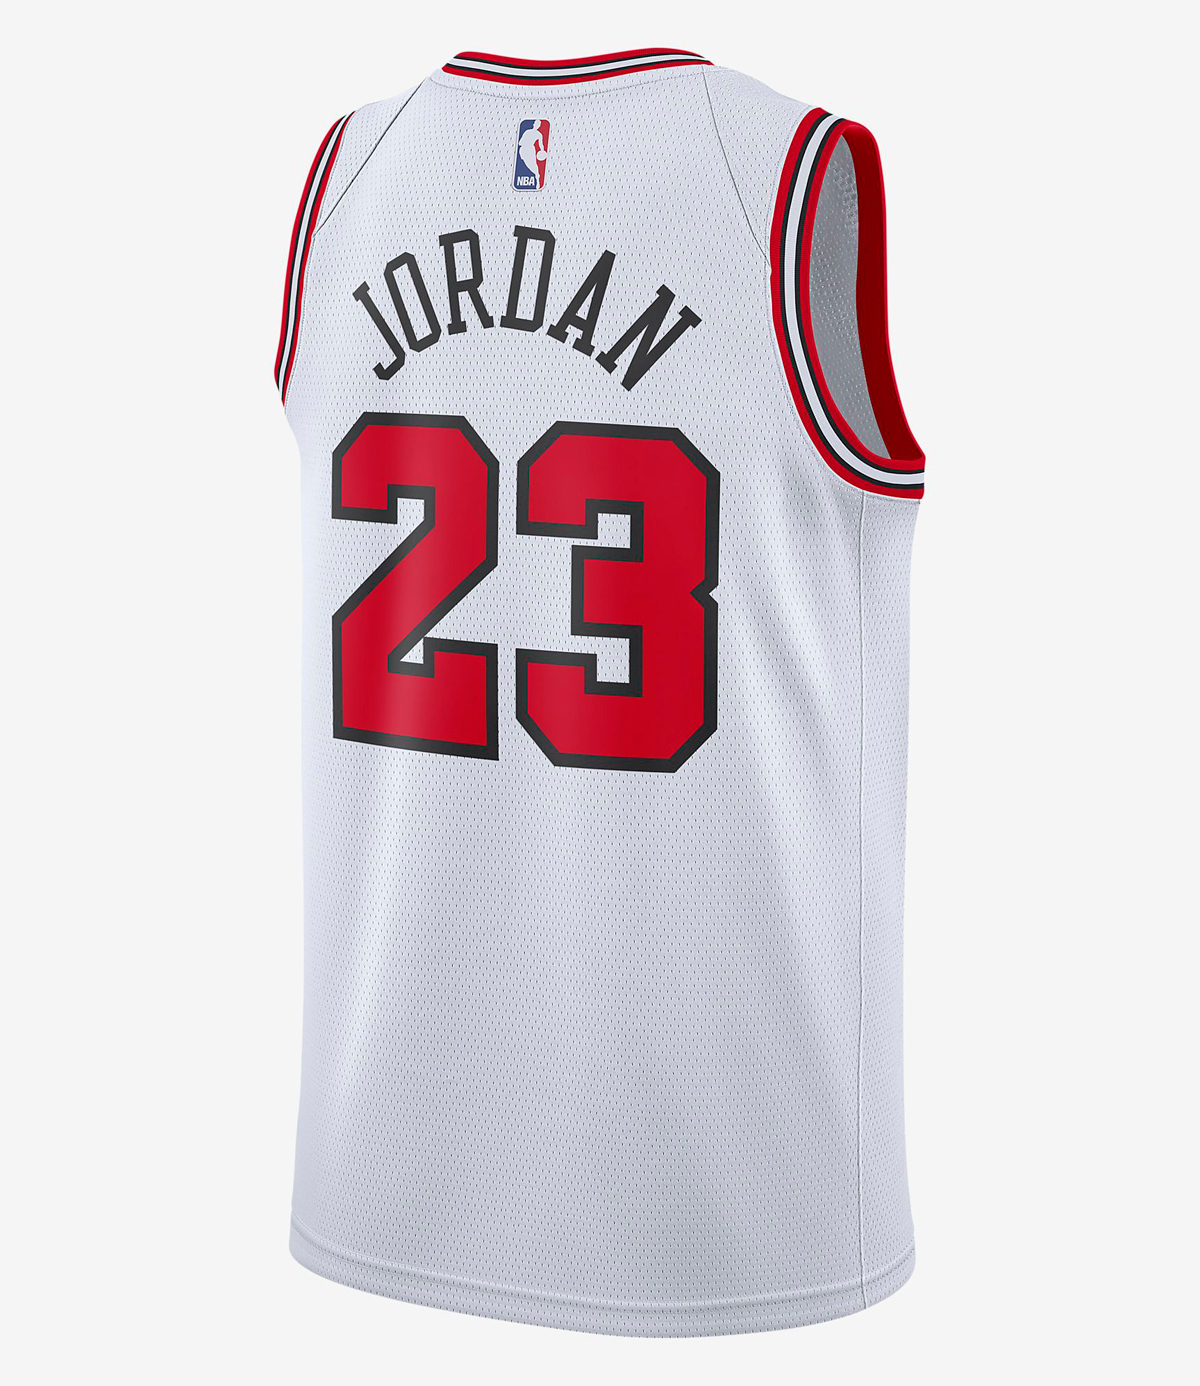 michael-jordan-chicago-bulls-association-nba-connected-jersey-2